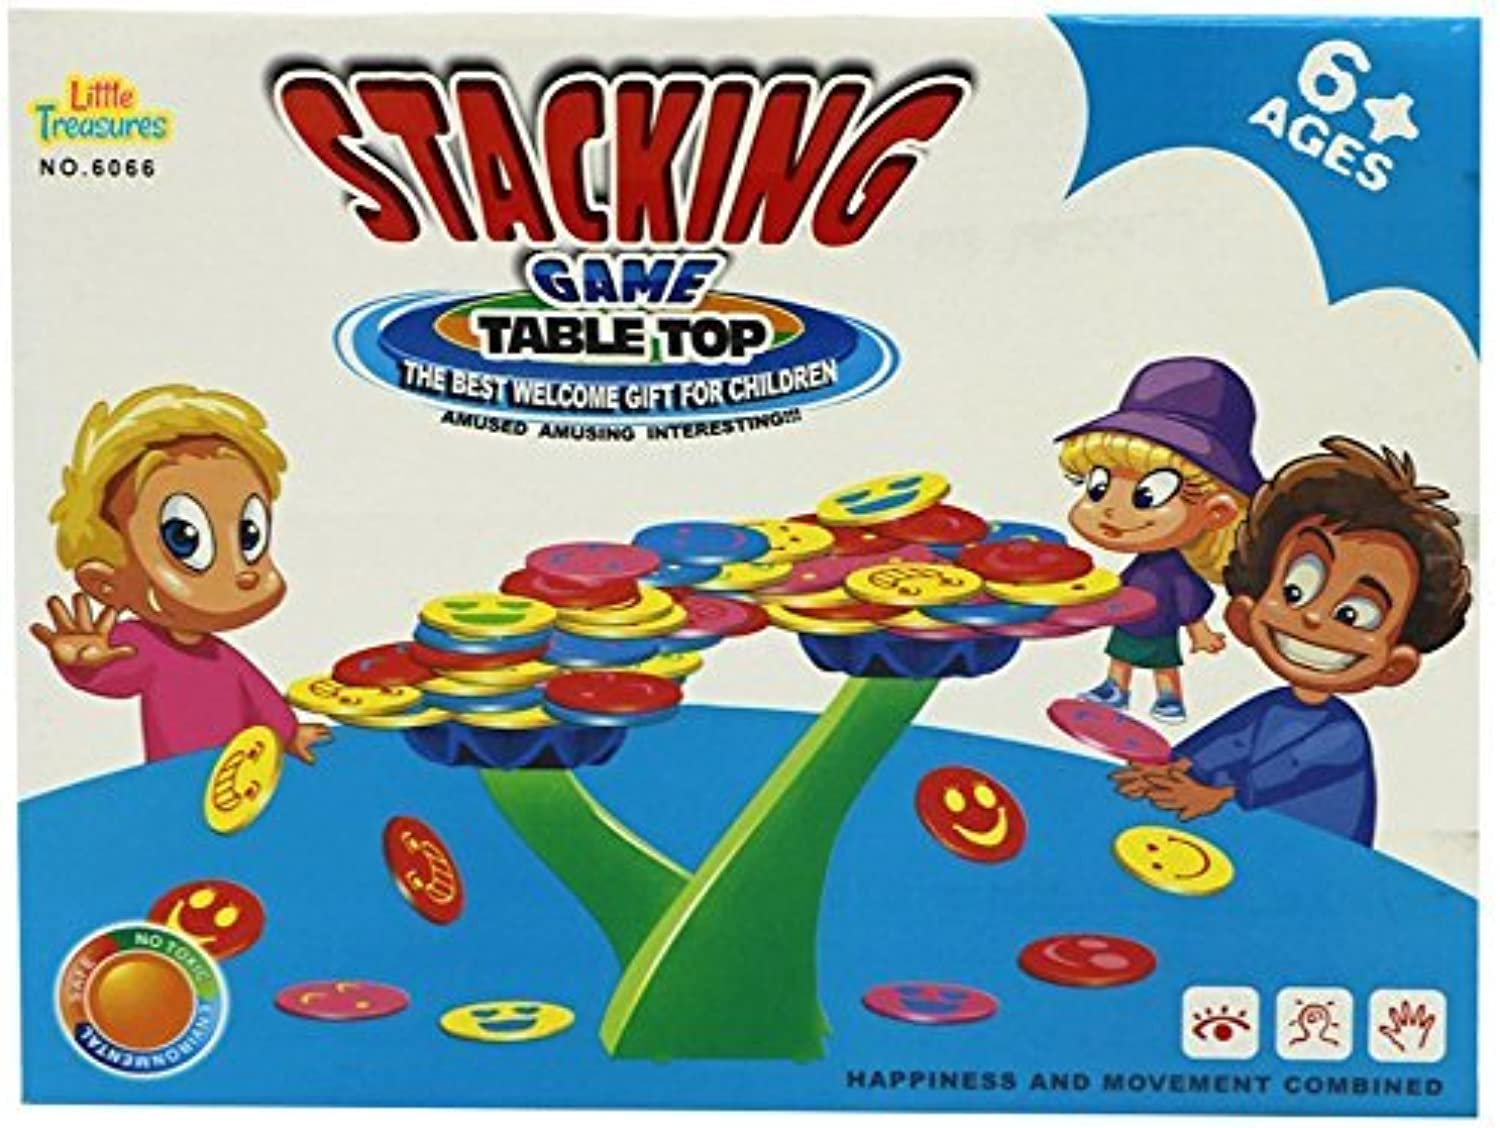 Little Treasures Stacking Coin Tabletop Balancing Game for Ages 6 and Up